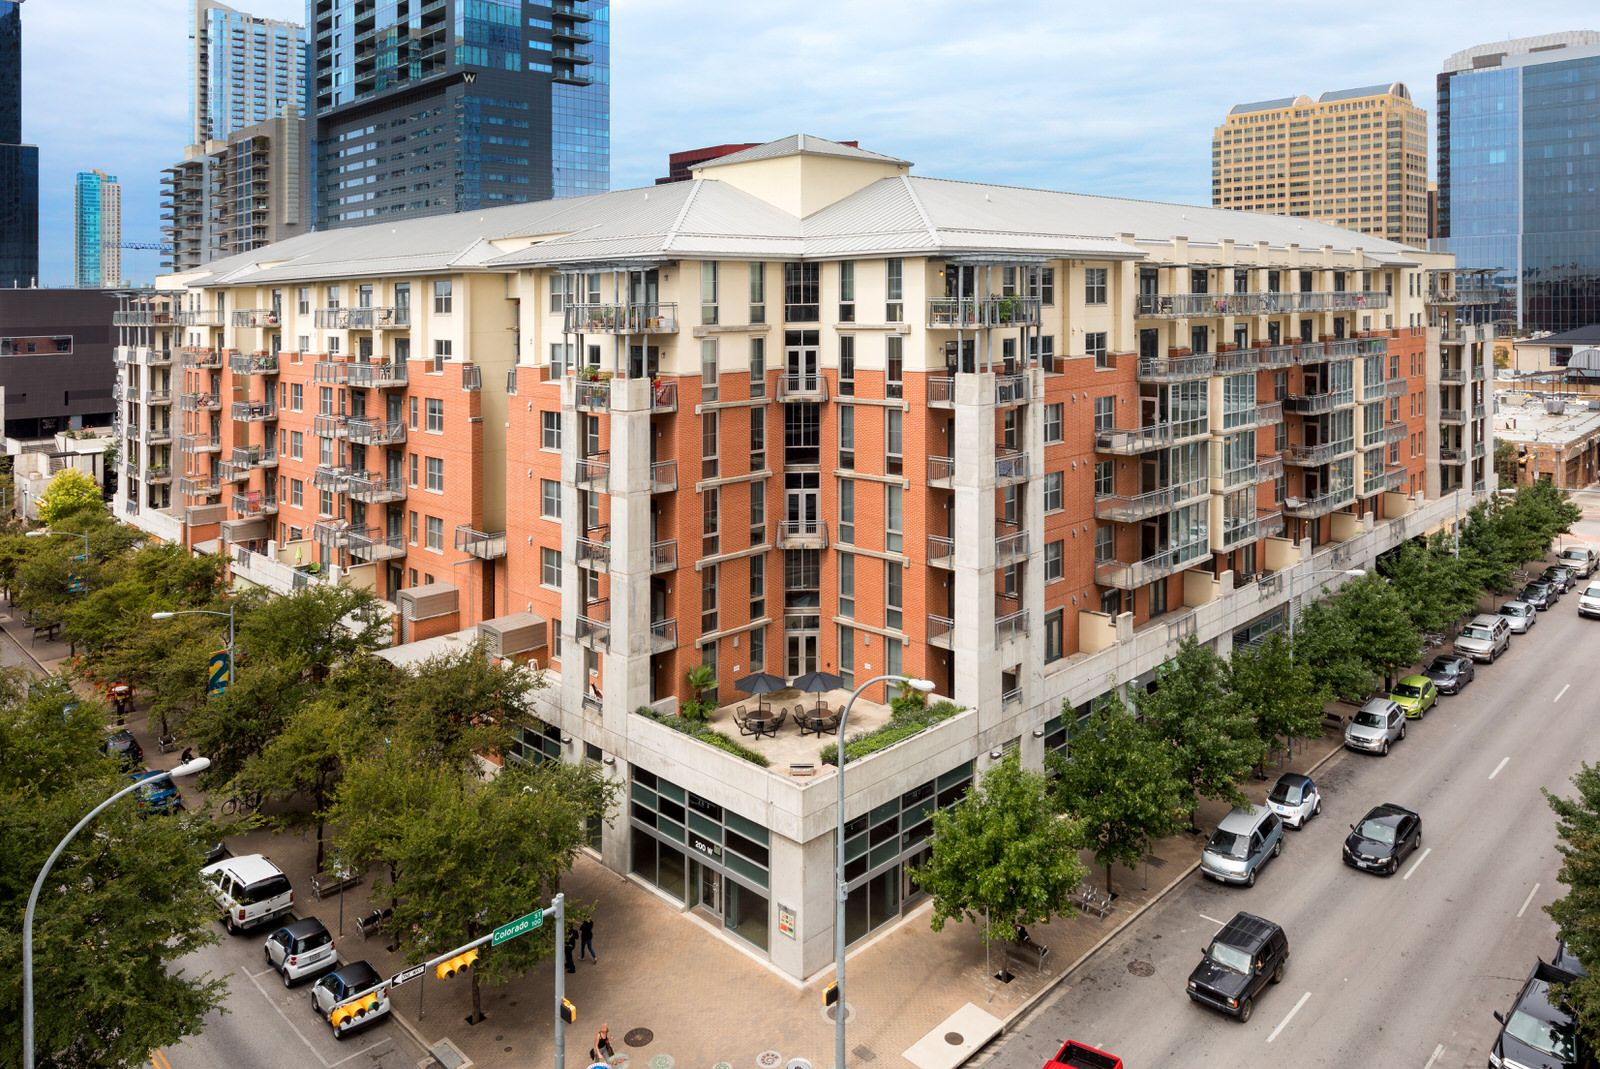 Our Austin Apartments At Amli Downtown Is Situated In The Heart Of The City S Center Austin Apartment Downtown Austin Apartments Austin Texas Apartments